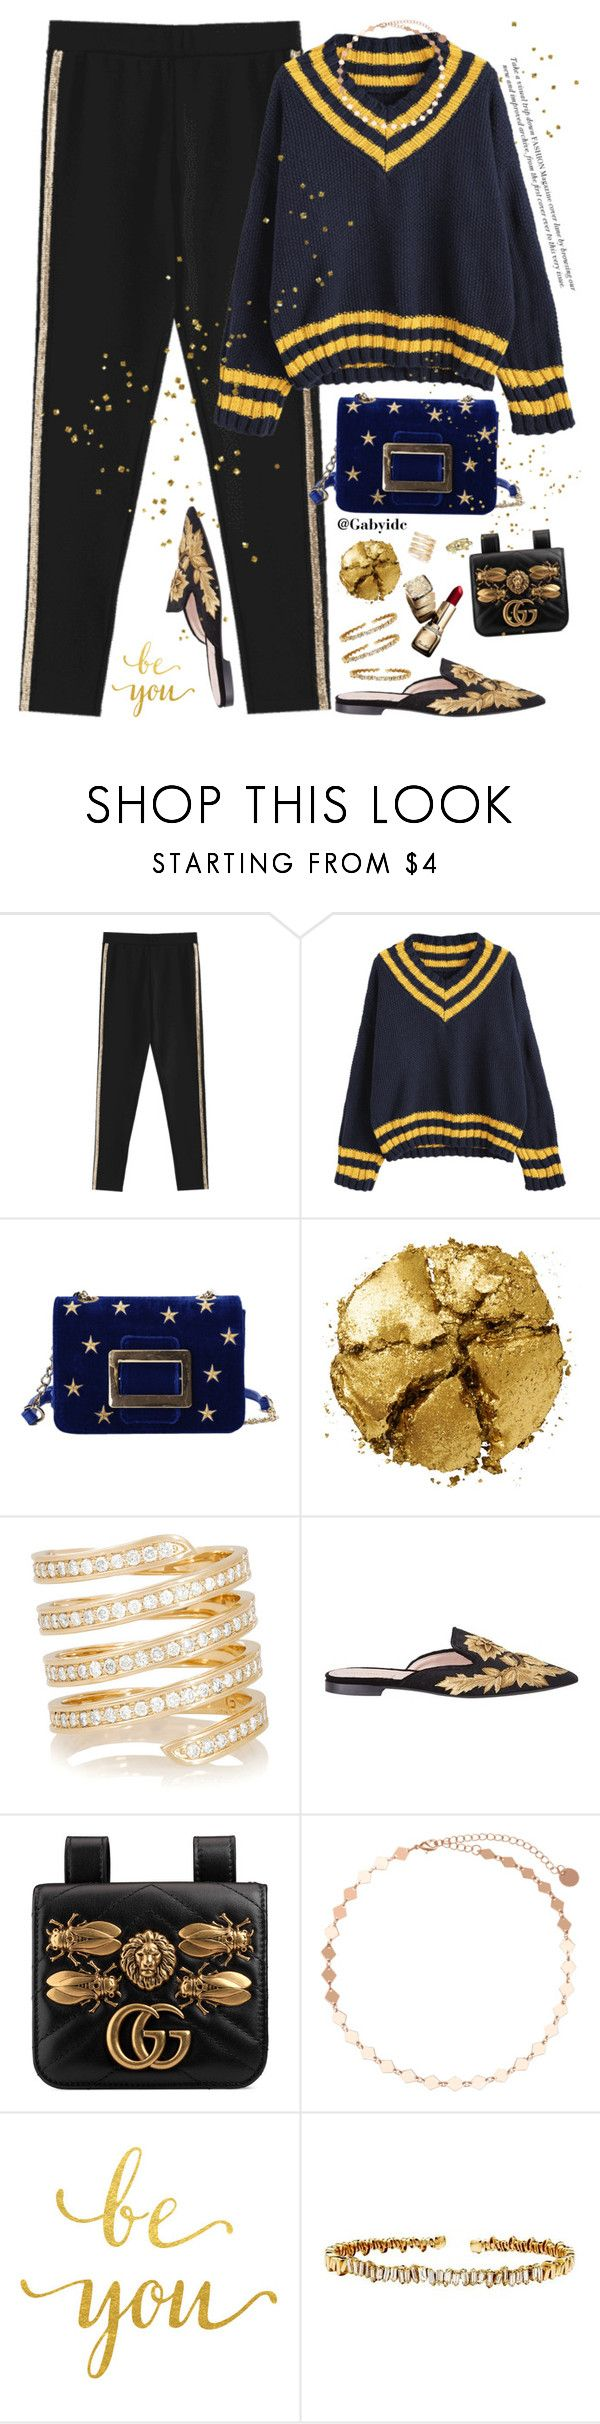 """""""Golden star✨"""" by gabyidc ❤ liked on Polyvore featuring Pat McGrath, Lynn Ban, Alberta Ferretti, Gucci, Guerlain, WALL, Suzanne Kalan and Bling Jewelry"""